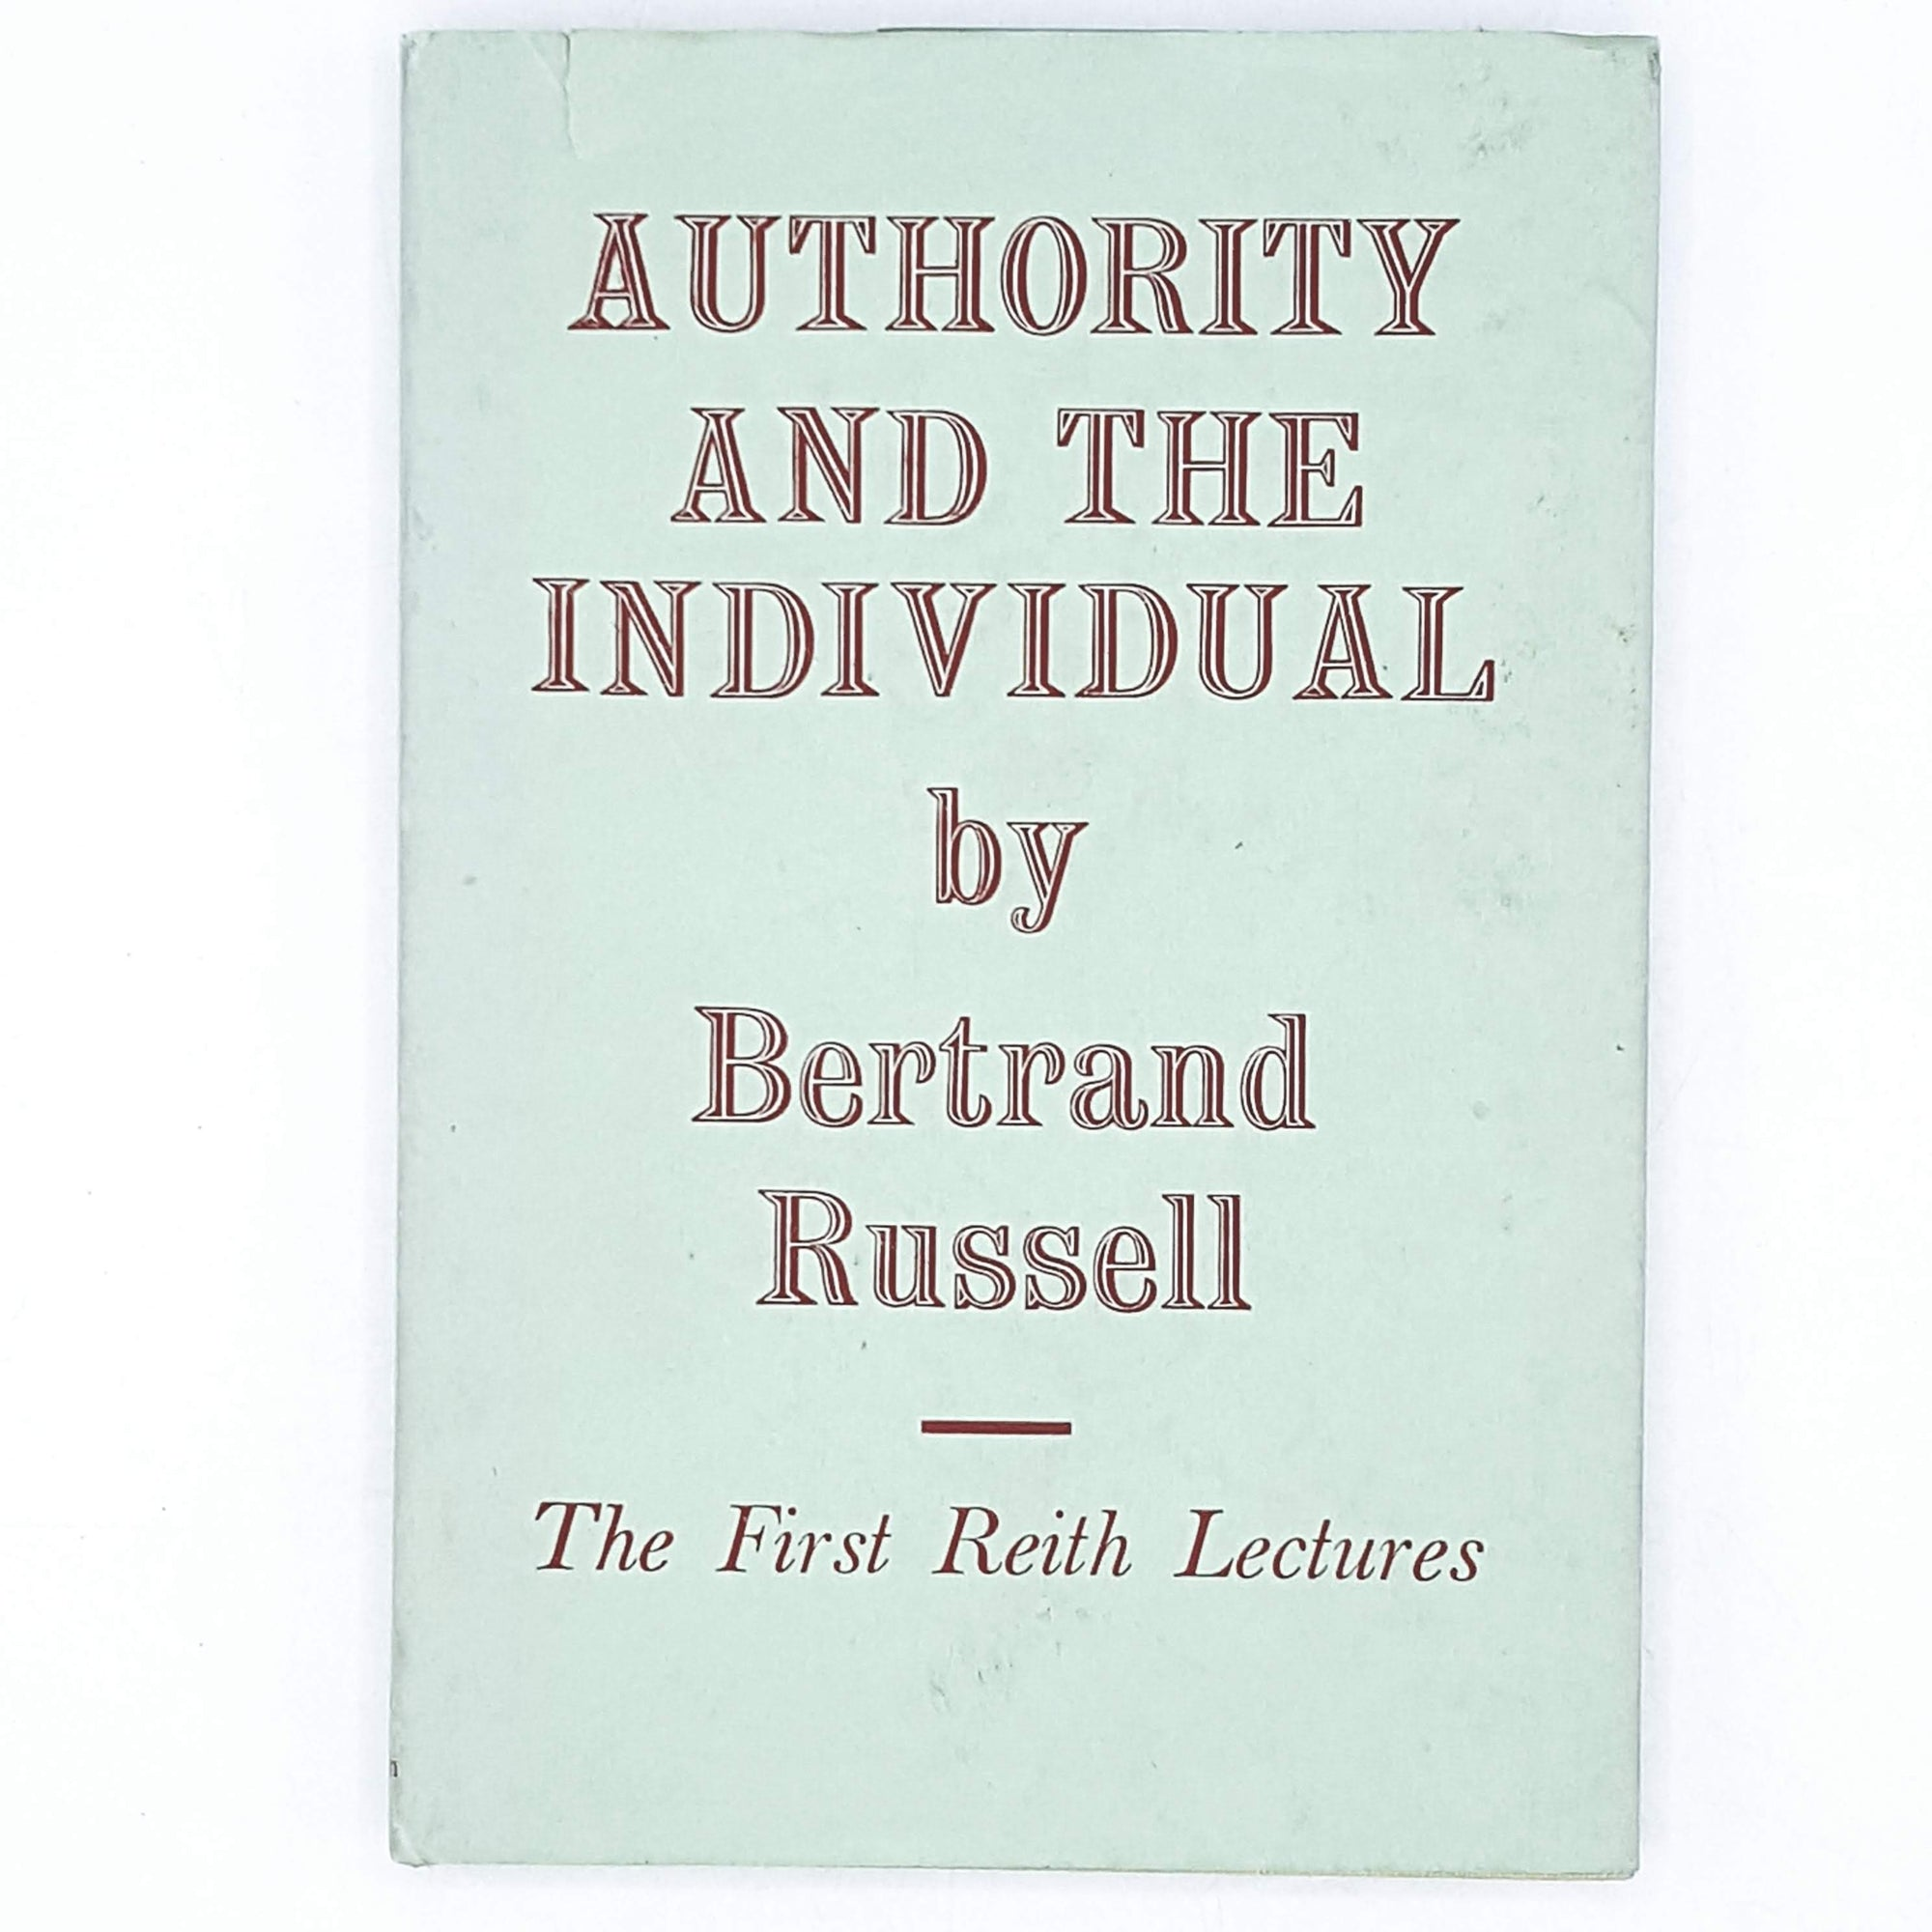 First Edition Bertrand Russell's Authority and the Individual 1949